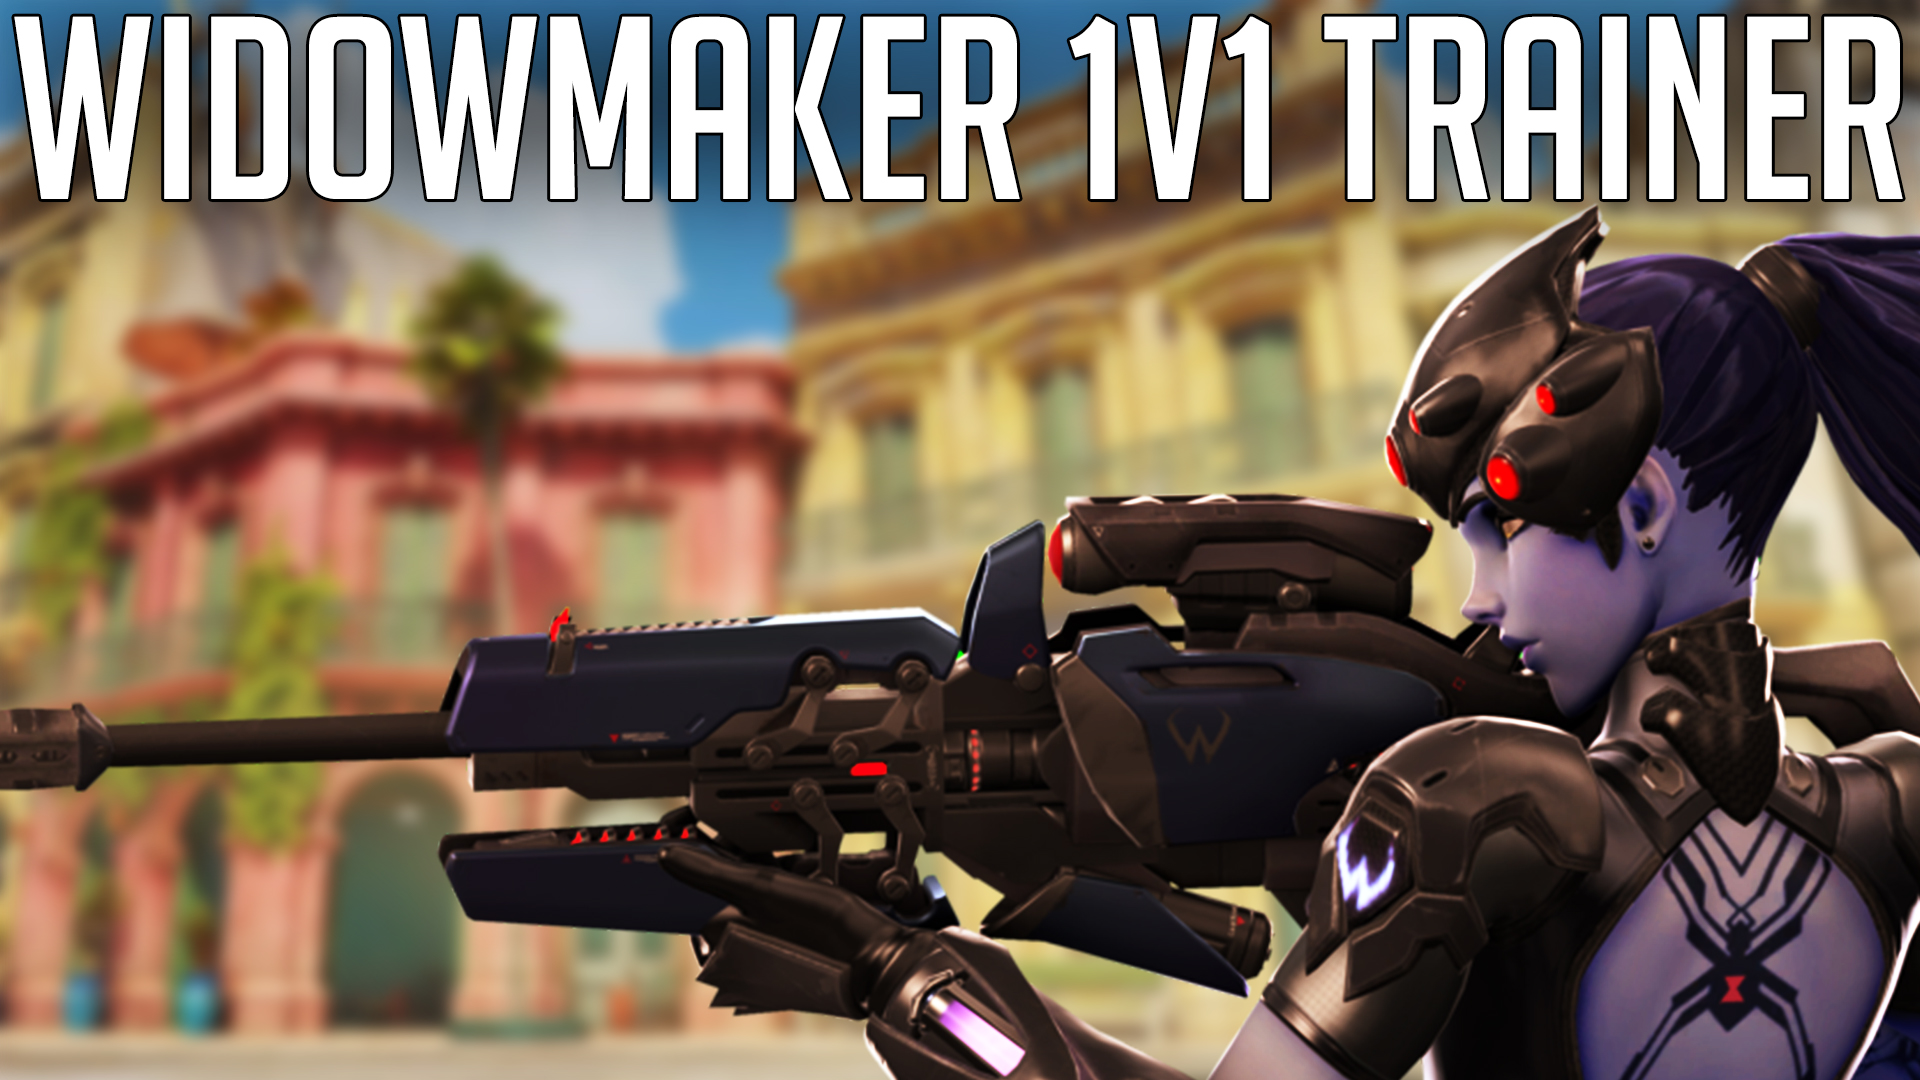 Thumbnail for Widowmaker 1v1 Practise Mode